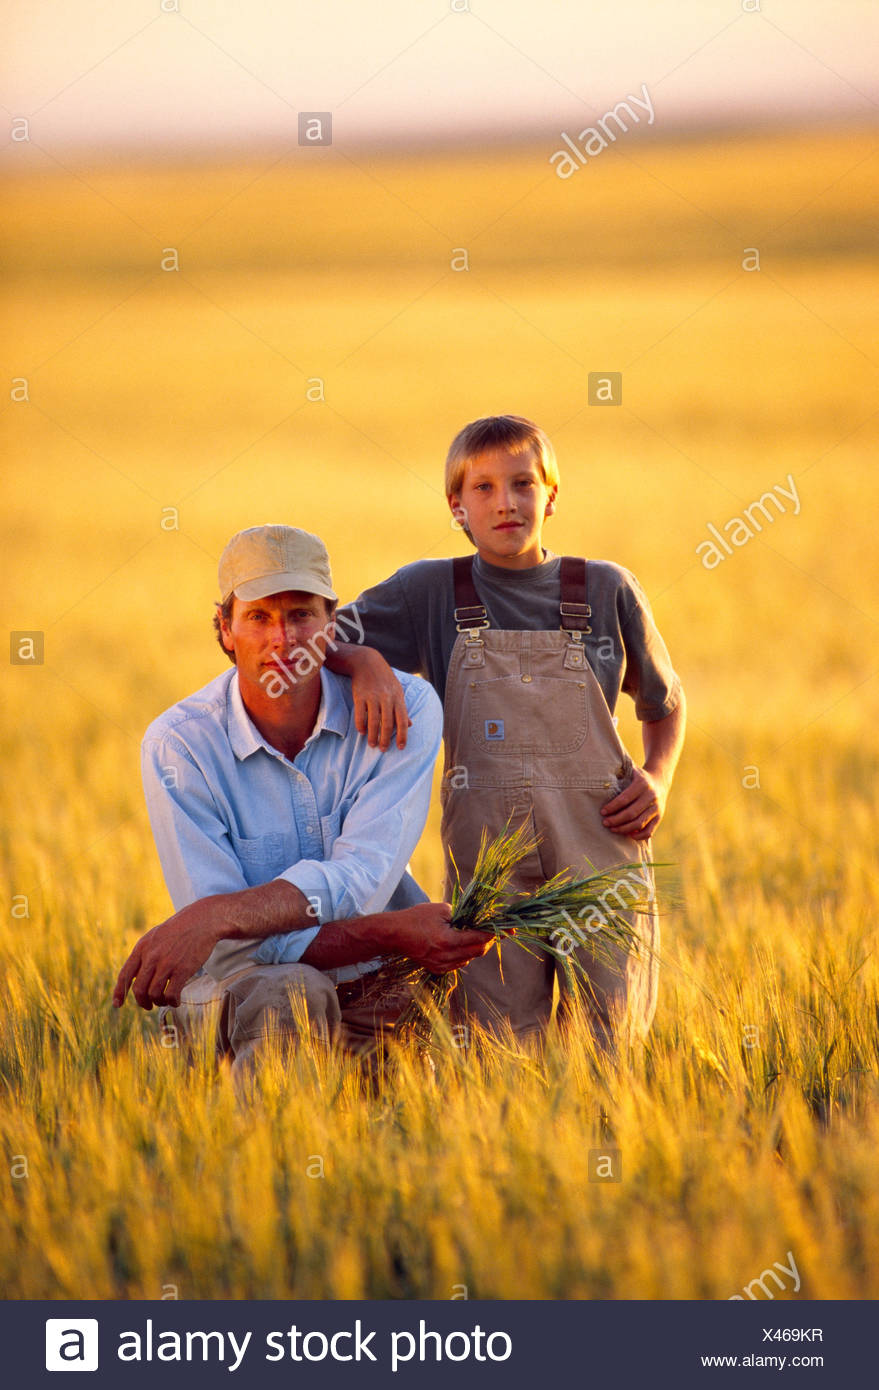 Agriculture - Farmer and his son in a field of maturing wheat / Central Montana, USA. - Stock Image